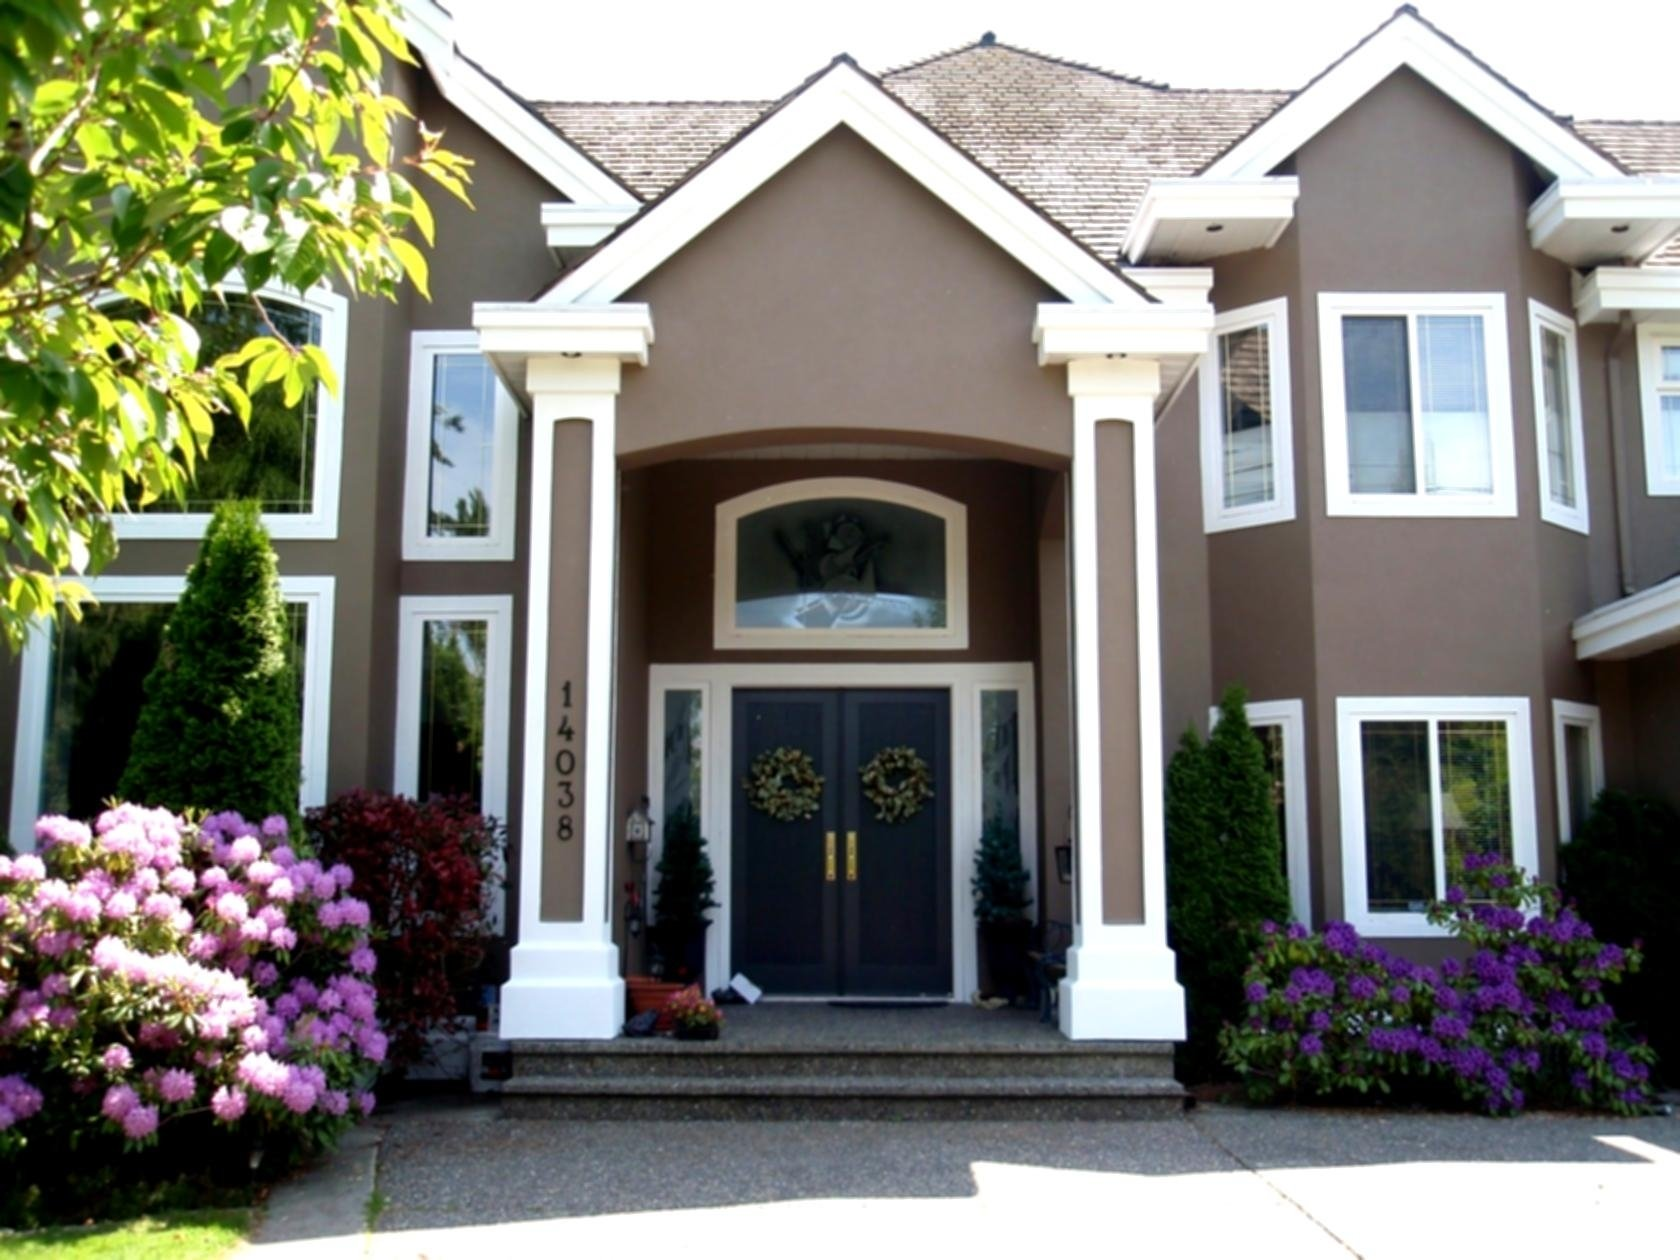 10 Fantastic Exterior Paint Ideas For Homes finest exterior paint ideas for homes pictures of exterior house 2021